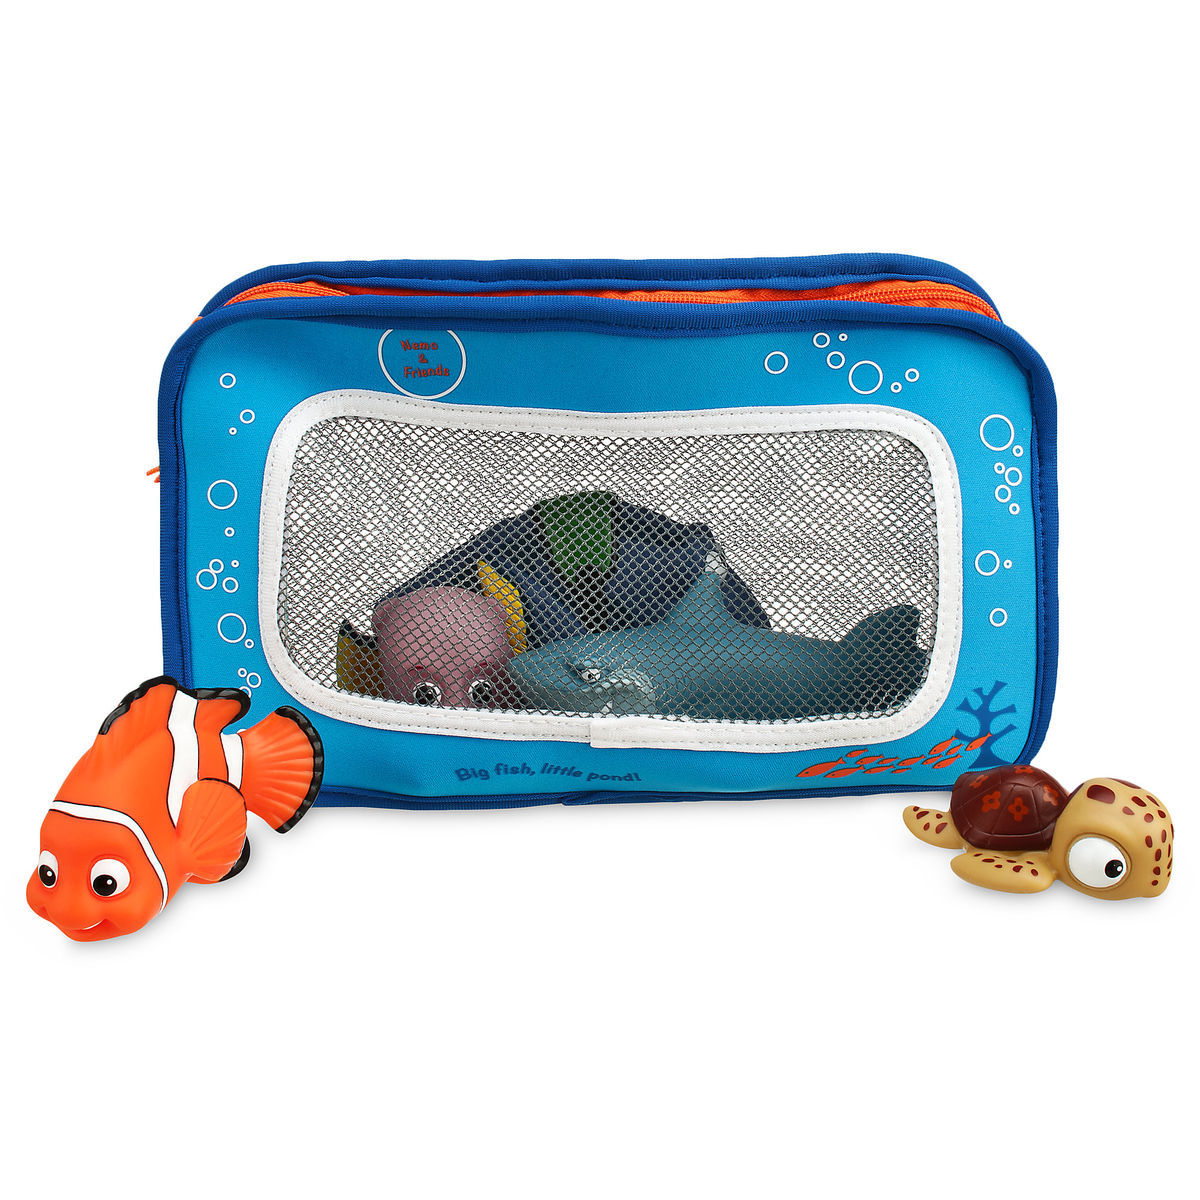 Finding Nemo Bath Toys for Baby | shopDisney